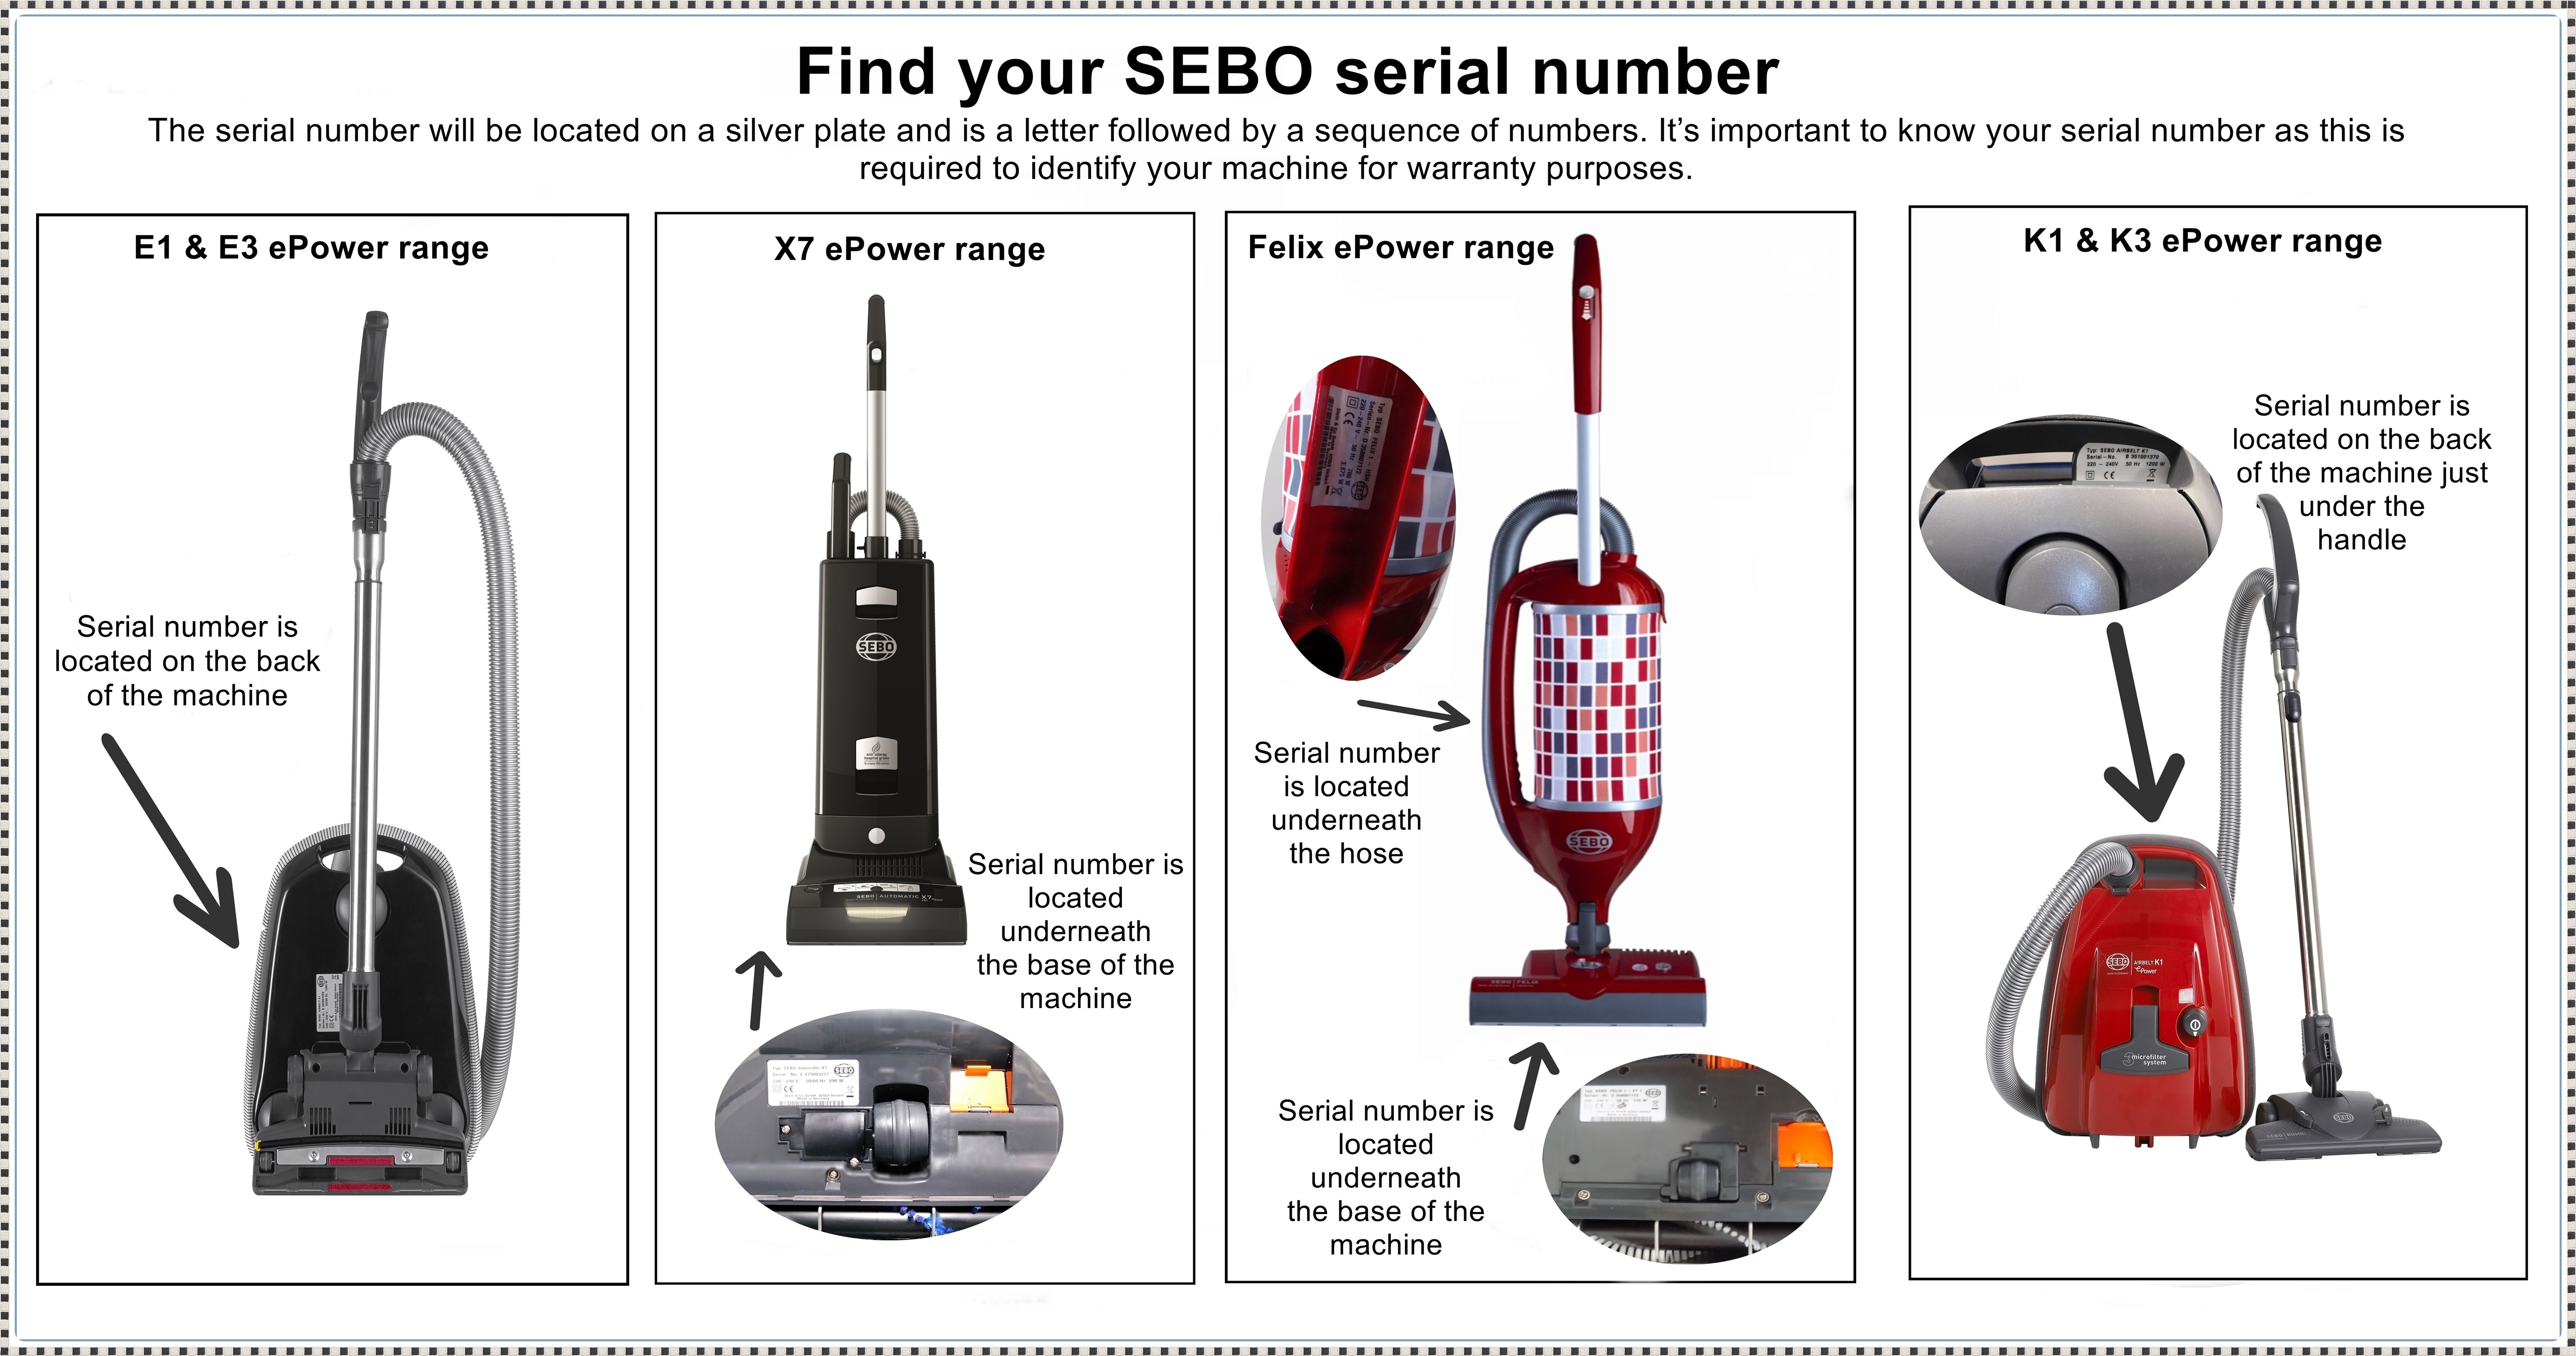 Find your SEBO serial number